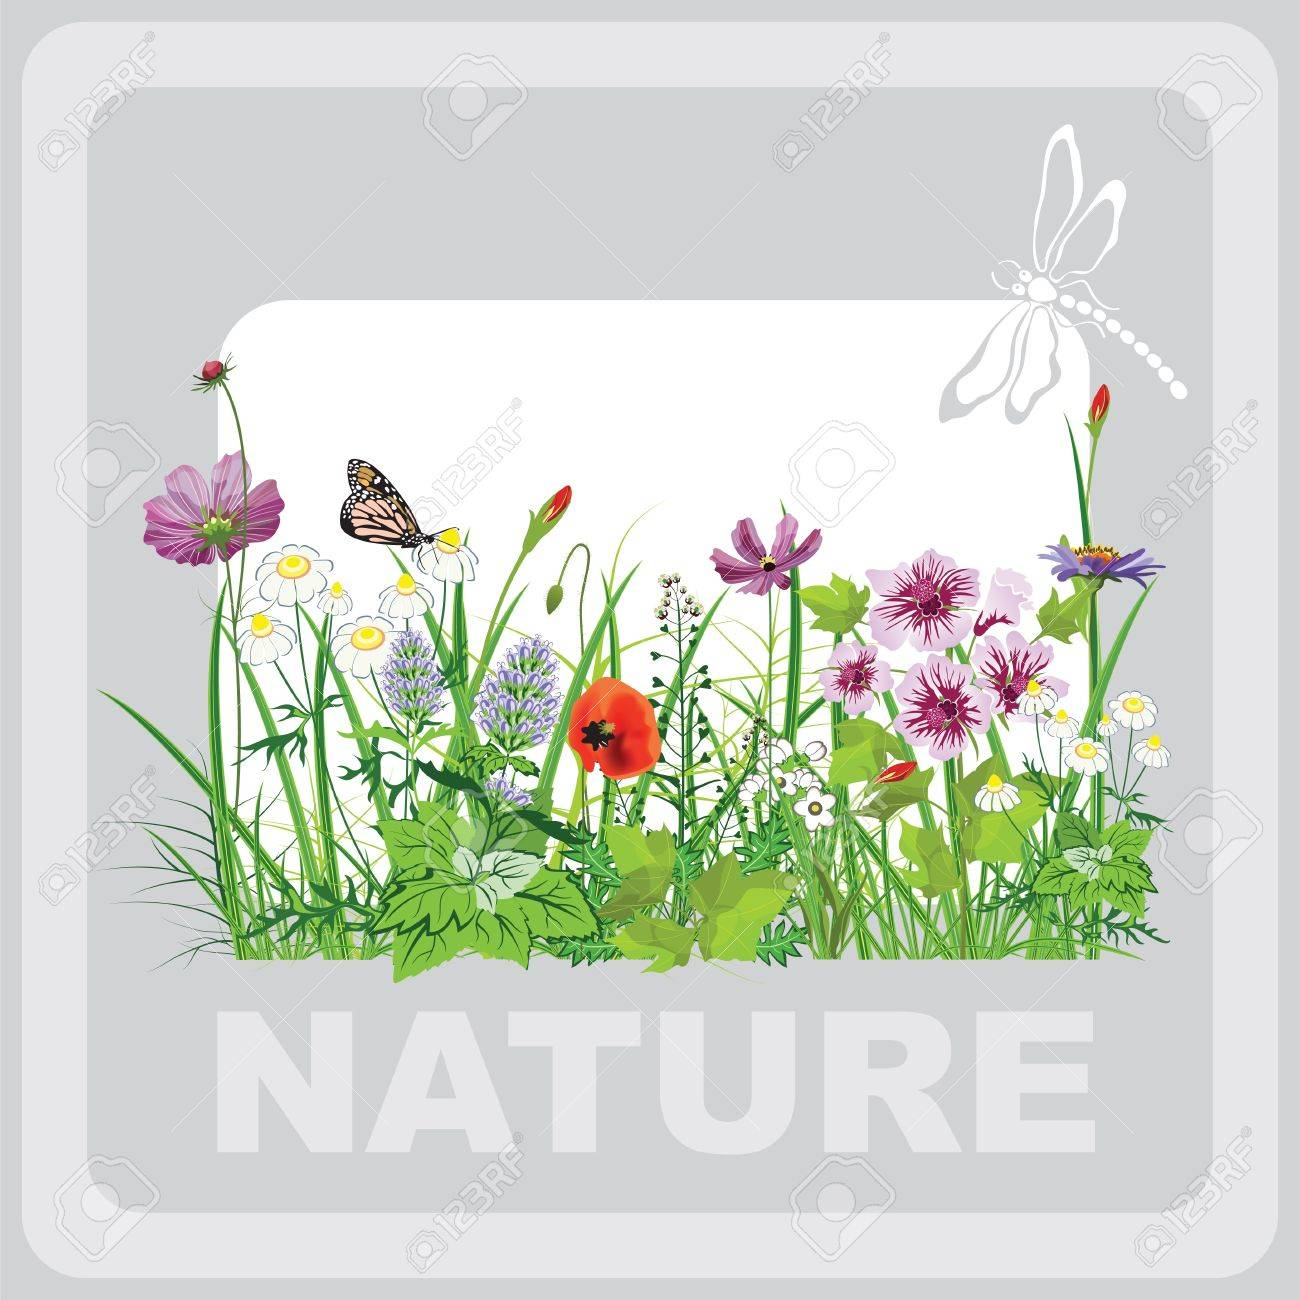 Green grass and flowers, landscape natural, banner in art Stock Vector - 17333790